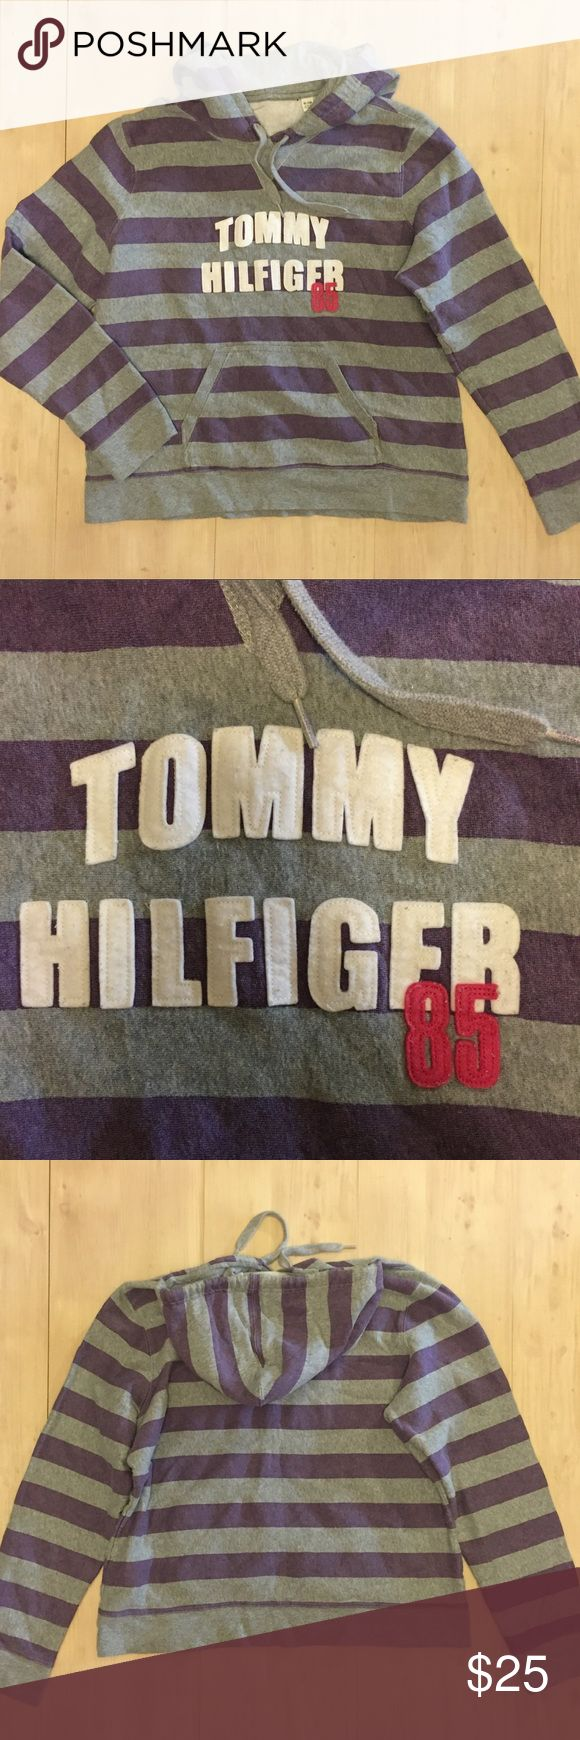 Tommy Hilfiger 86 spell out women's hoodie stripe Tommy Hilfiger 86 spell out patch purple gray stripe hoodie soft Sz XL pre owned no holes no stains no rips missing tag still can see where it was and the 1 800 tommy cares on material washing tag for authenticity thx for looking Tommy Hilfiger Tops Sweatshirts & Hoodies